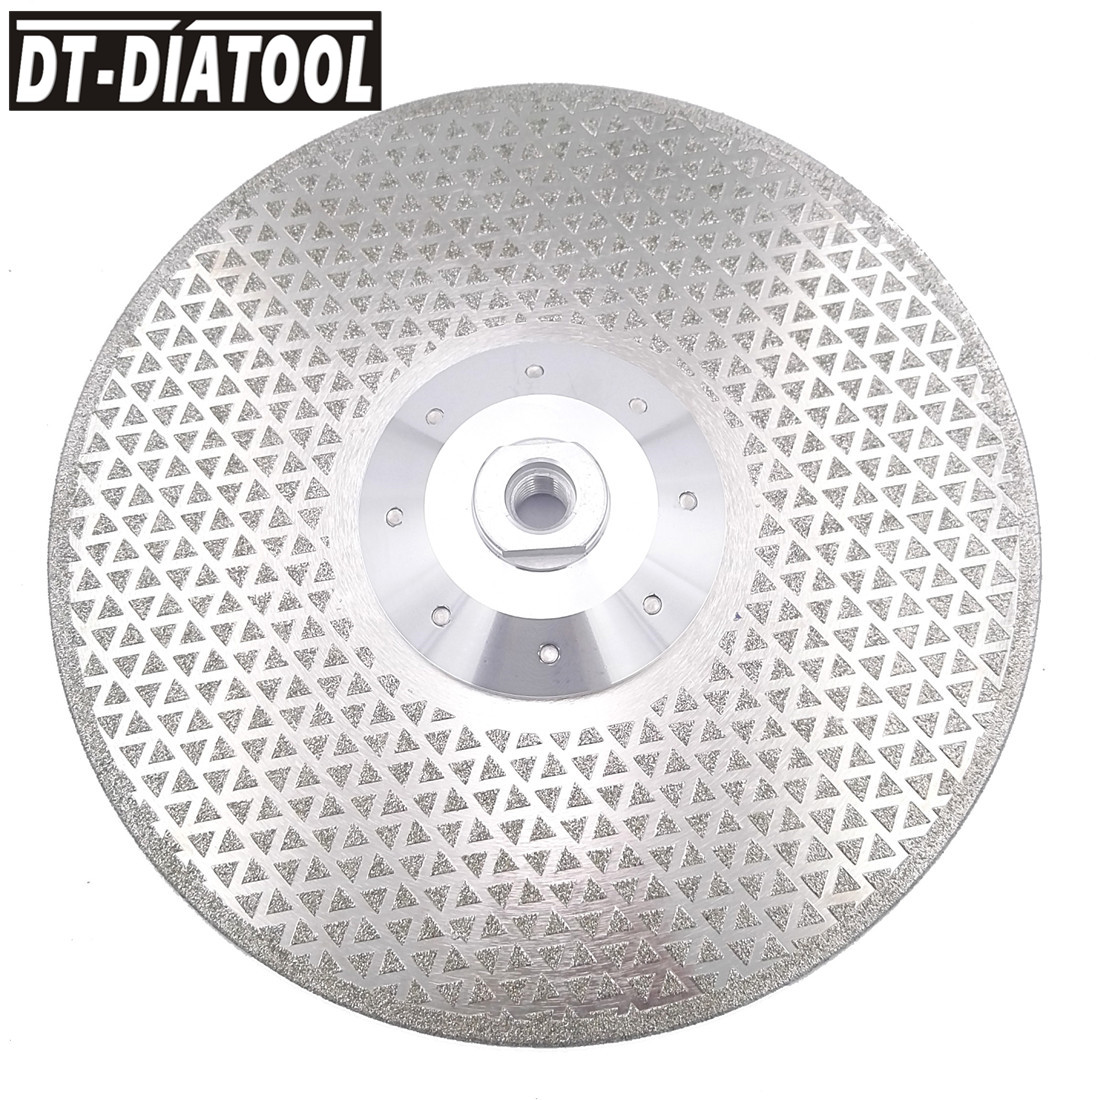 """DT DIATOOL 2pcs 9""""/230mm Electroplated Diamond Cutting Saw Blade Grinding Disc Double Sides M14 Flange for Cutting Marble Tile-in Saw Blades from Tools    3"""